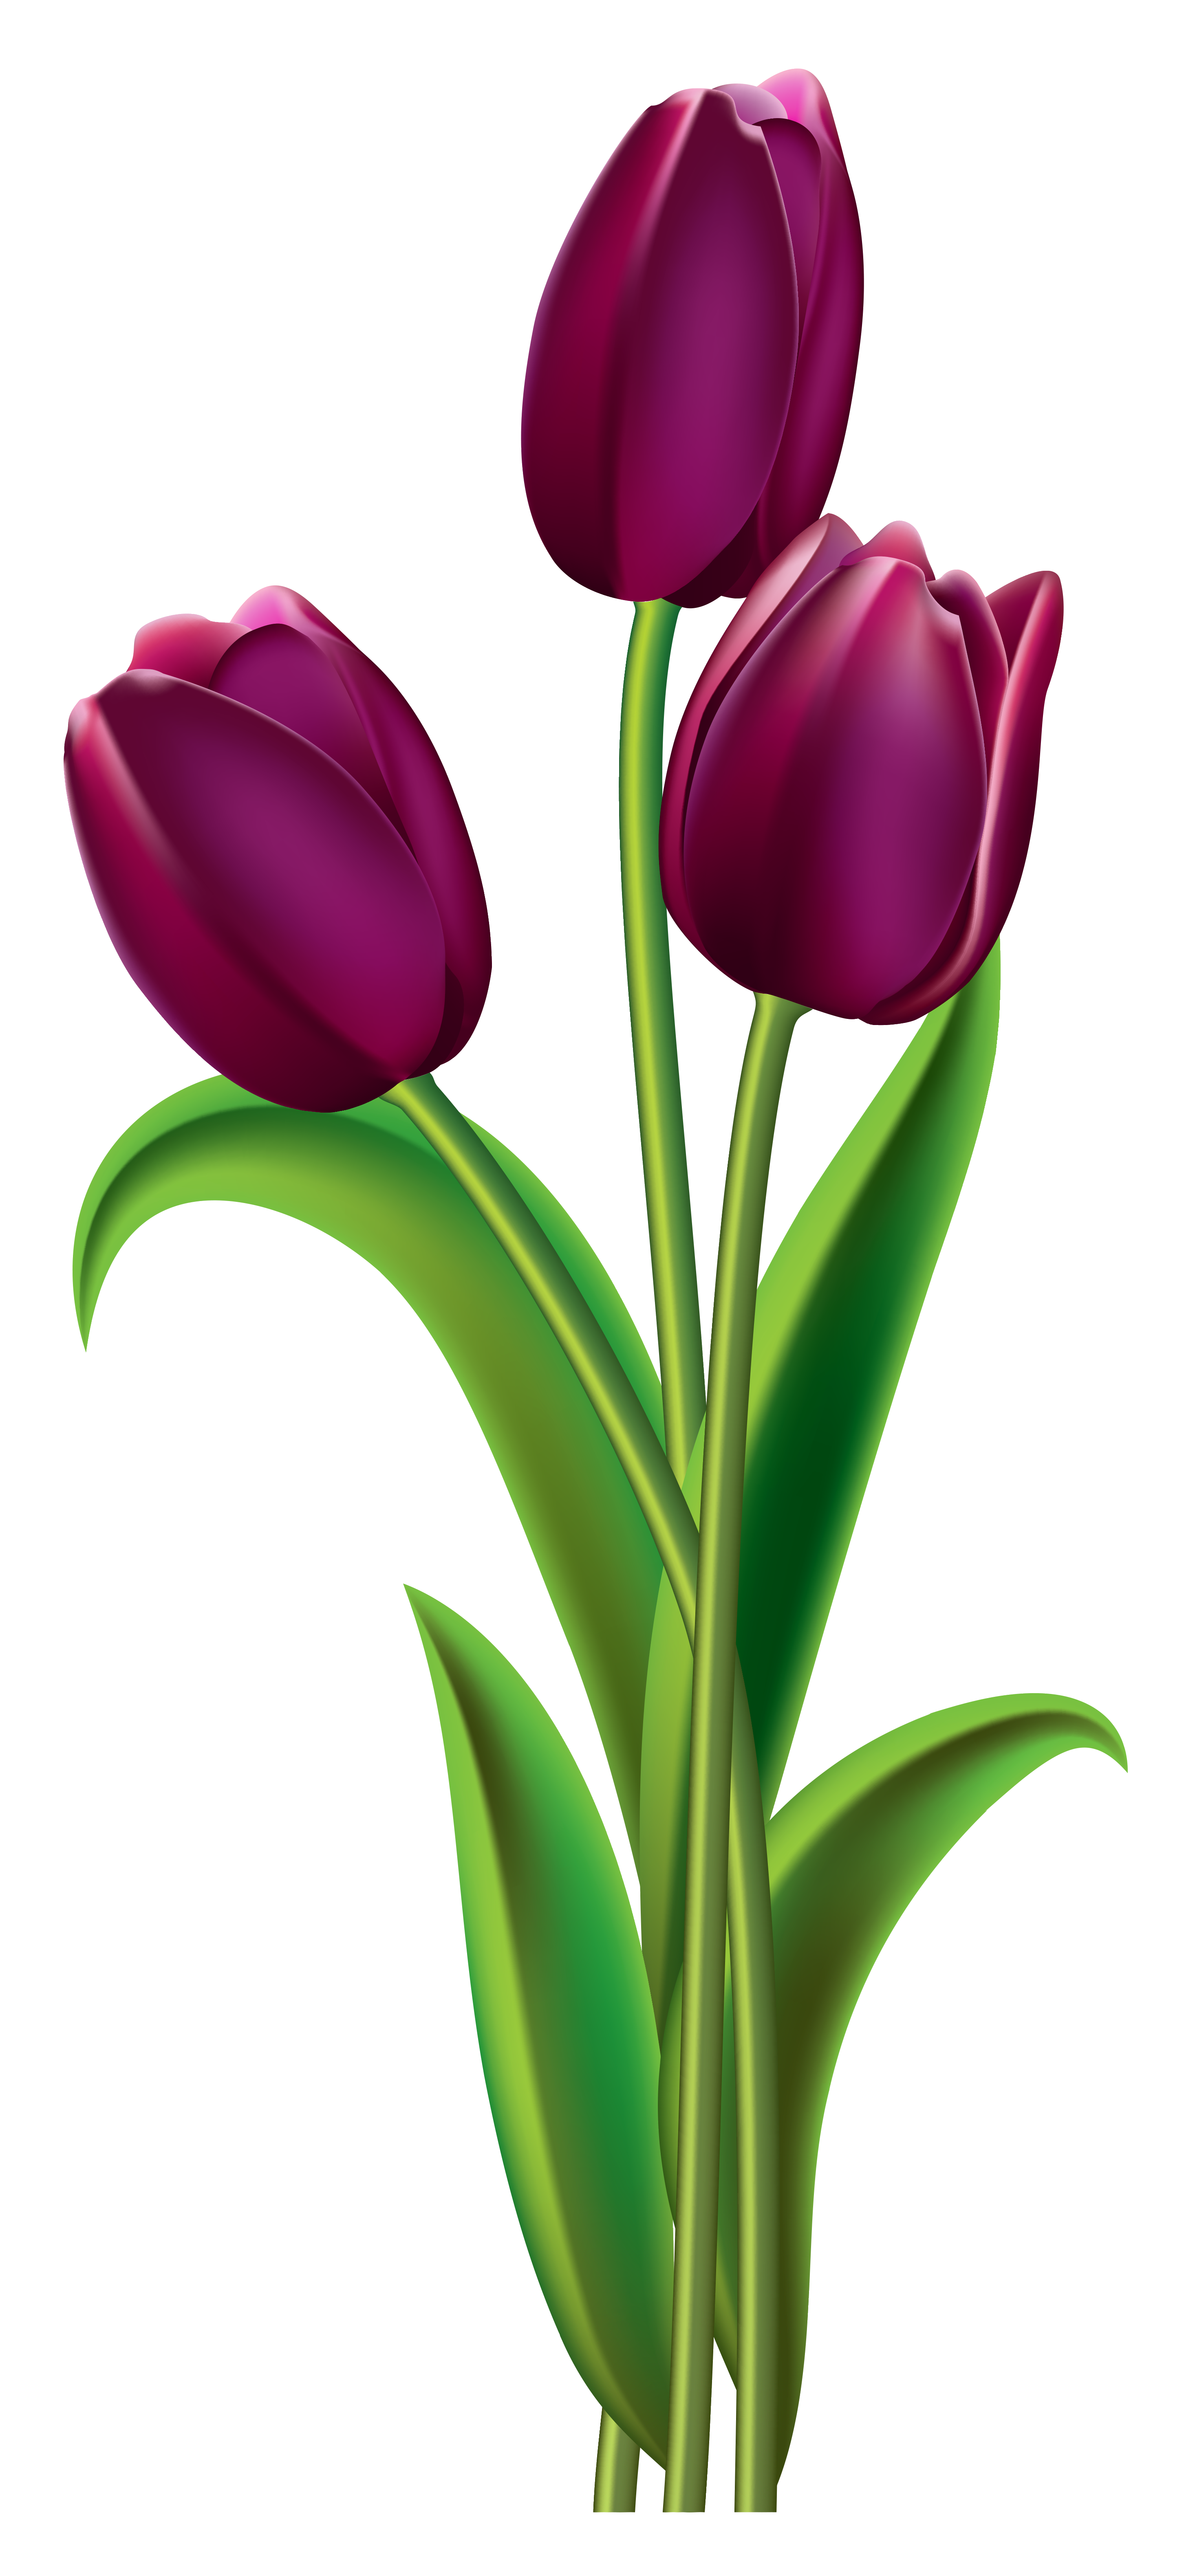 Tulip clipart transparent background. Tulips png picture gallery